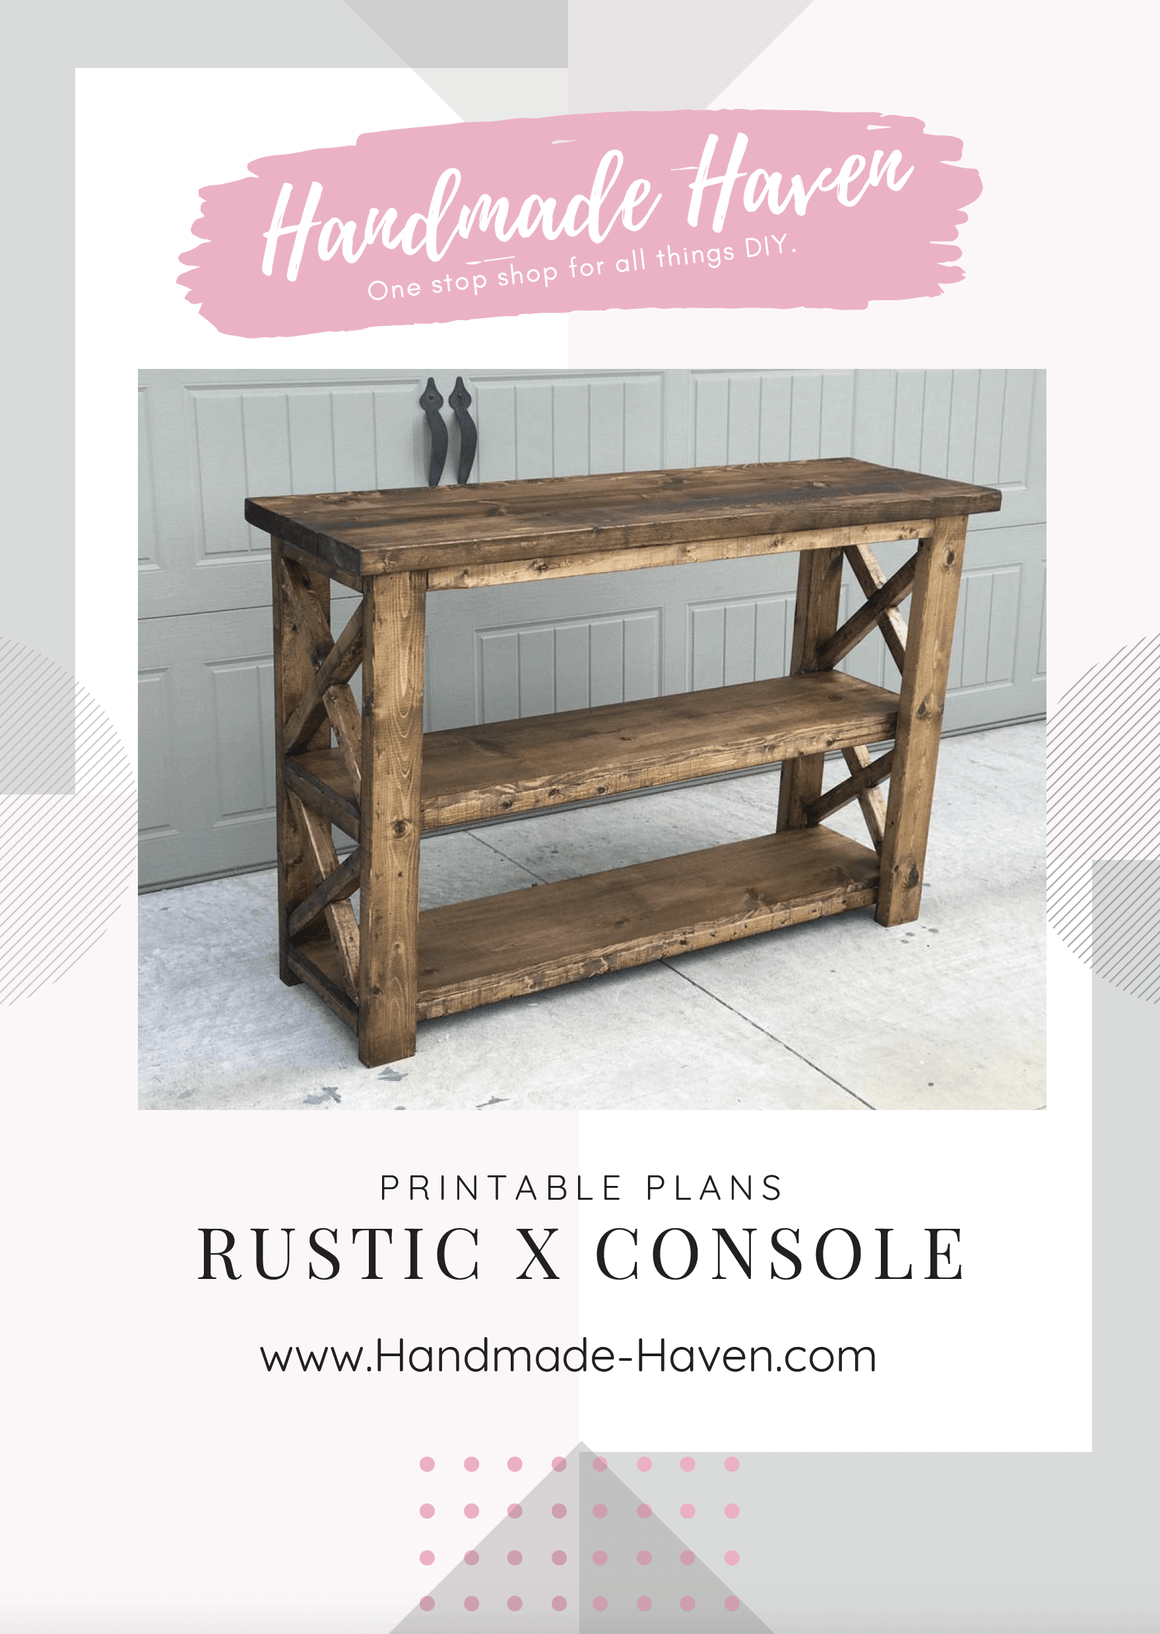 Rustic X Console - Printable Plans